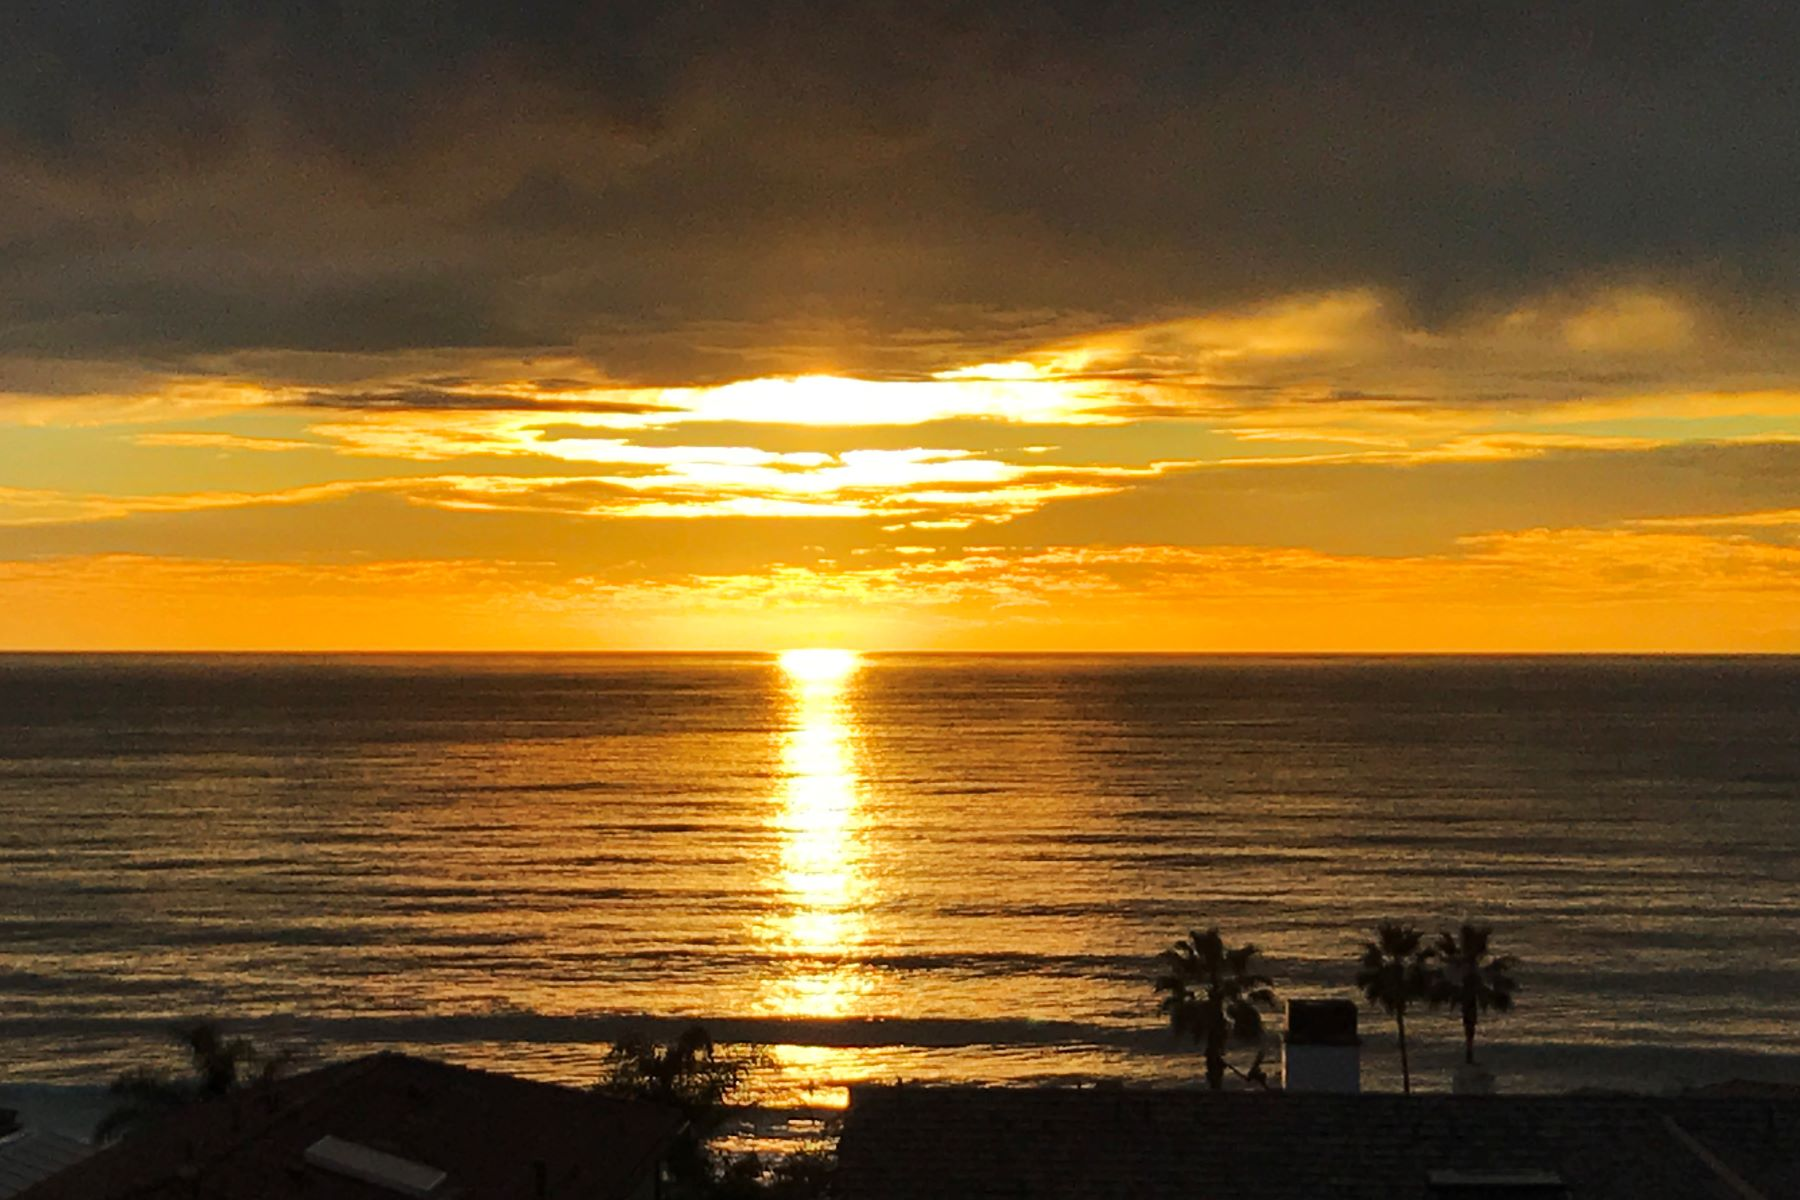 Single Family Homes for Sale at 65 Ritz Cove Drive Dana Point, California 92629 United States